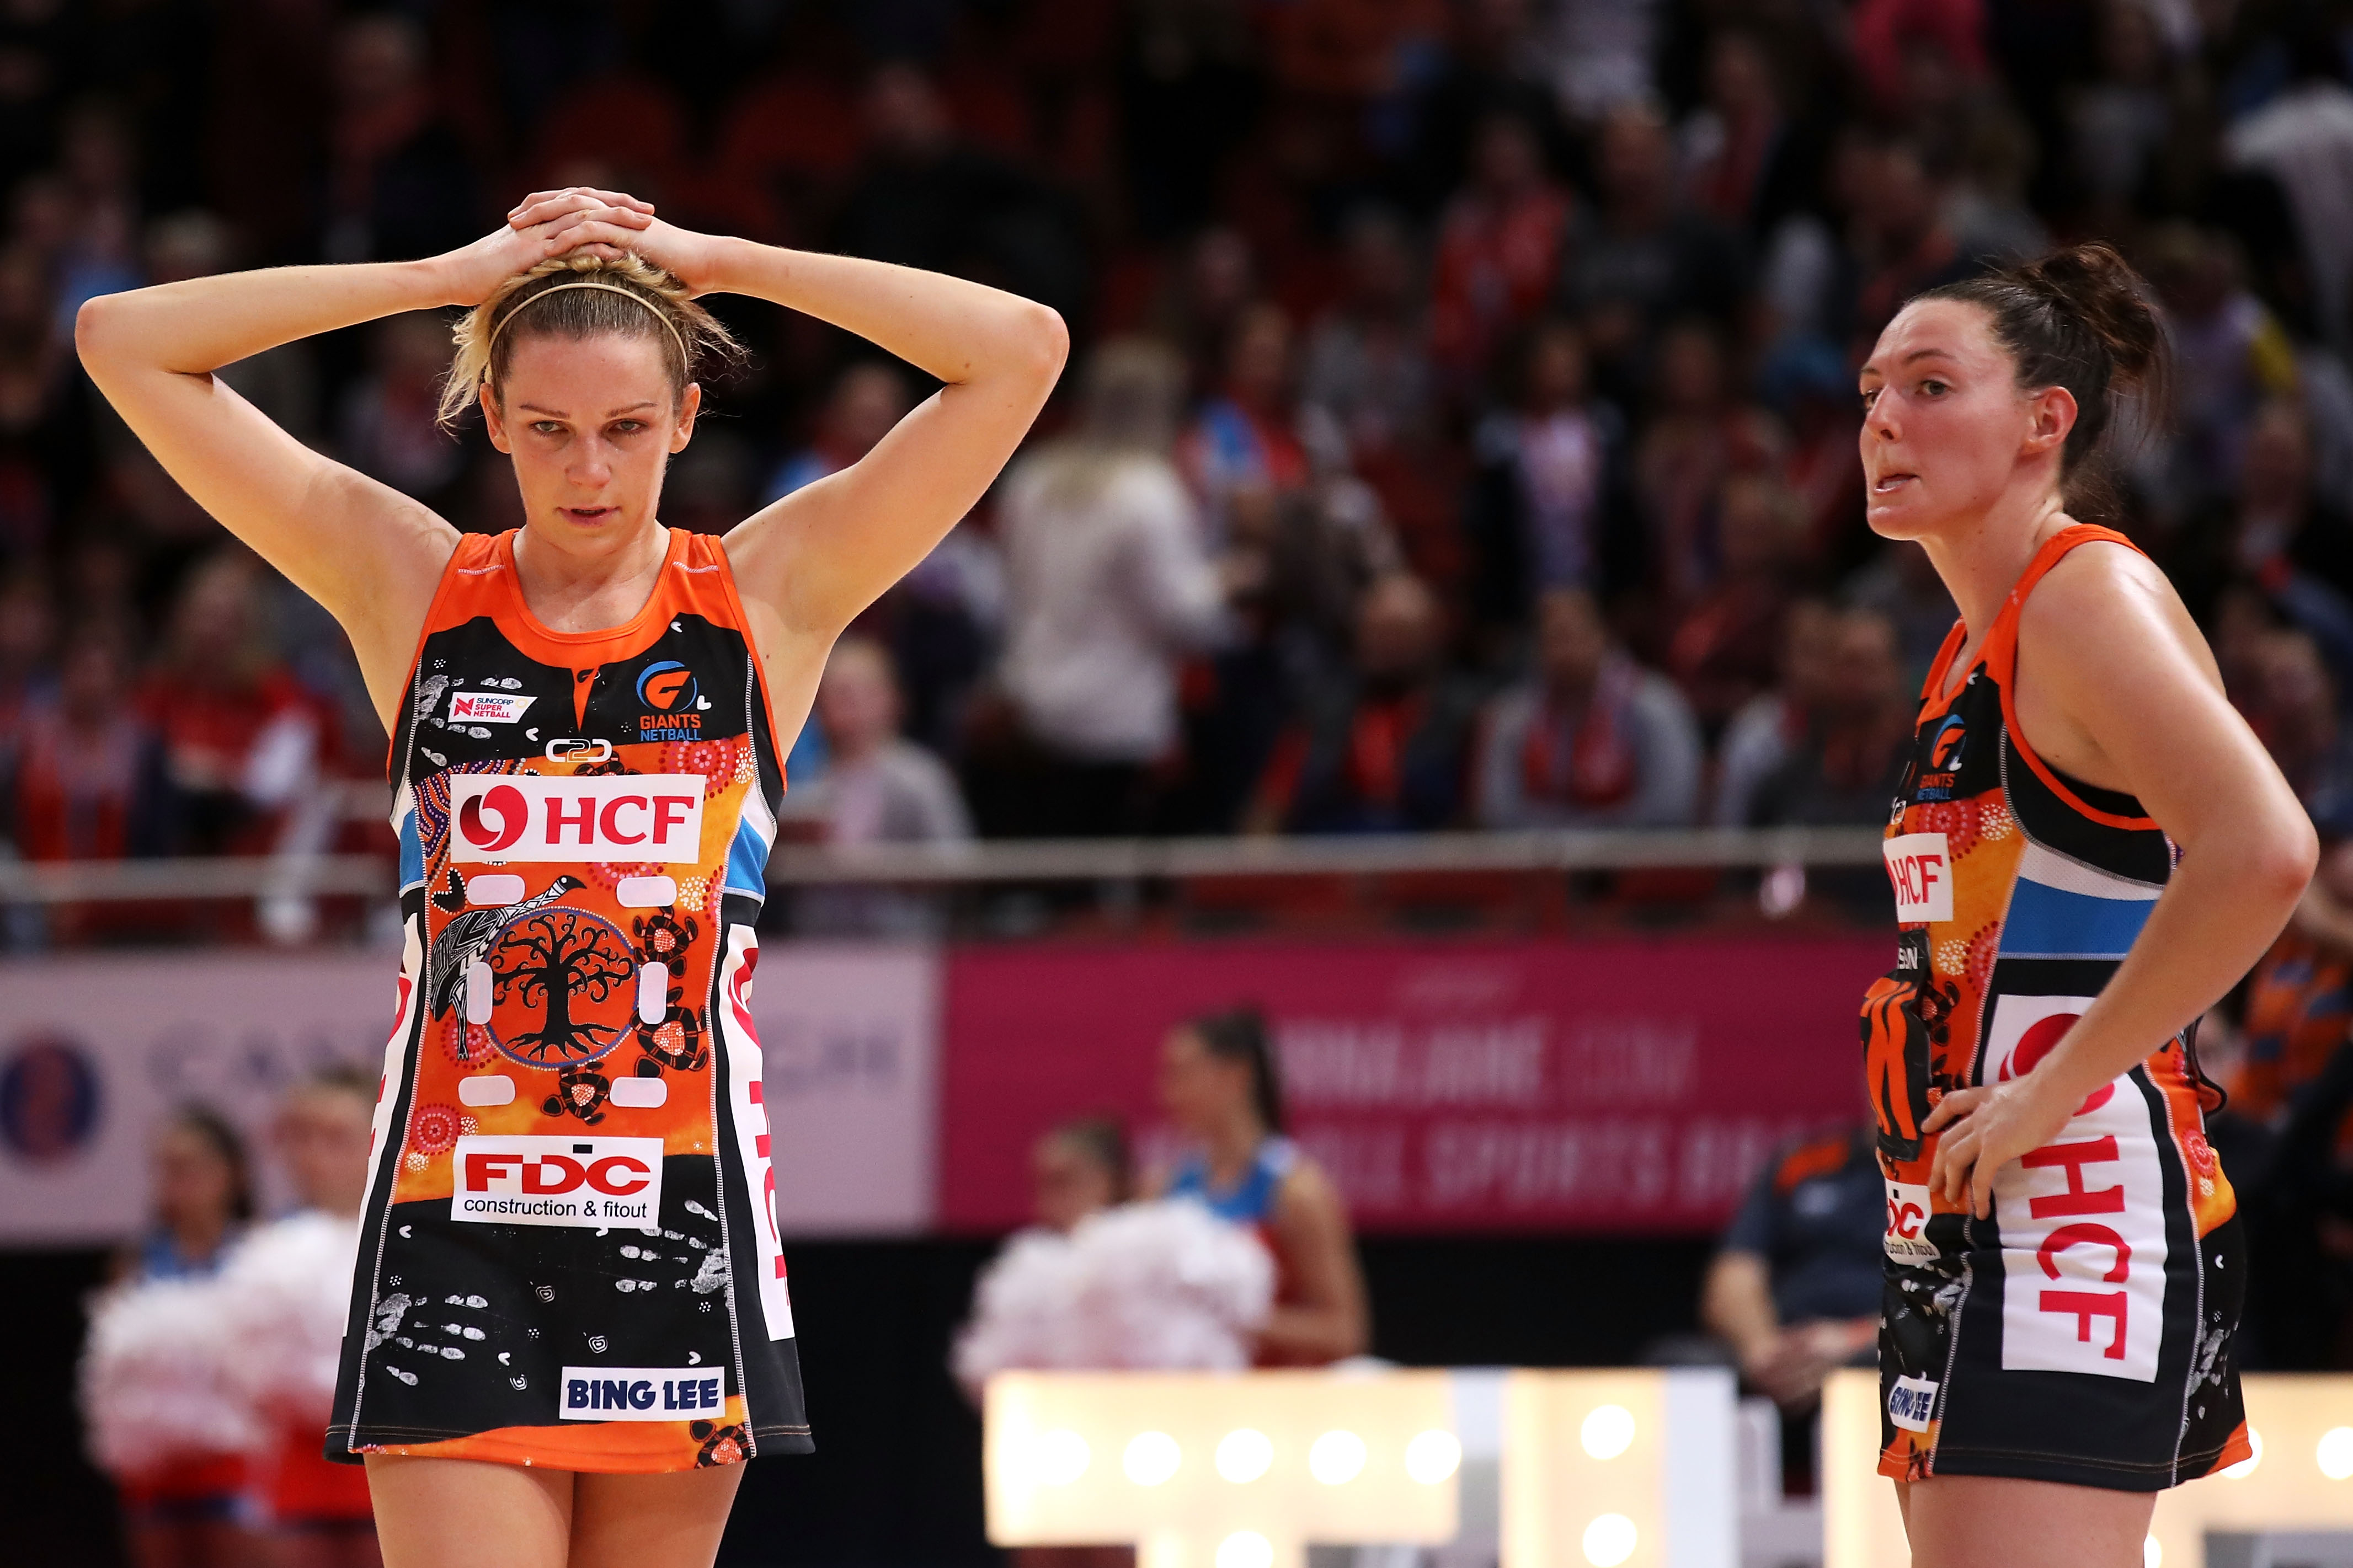 Giants players Jo Harten and Sam Poolman Reflect on their loss